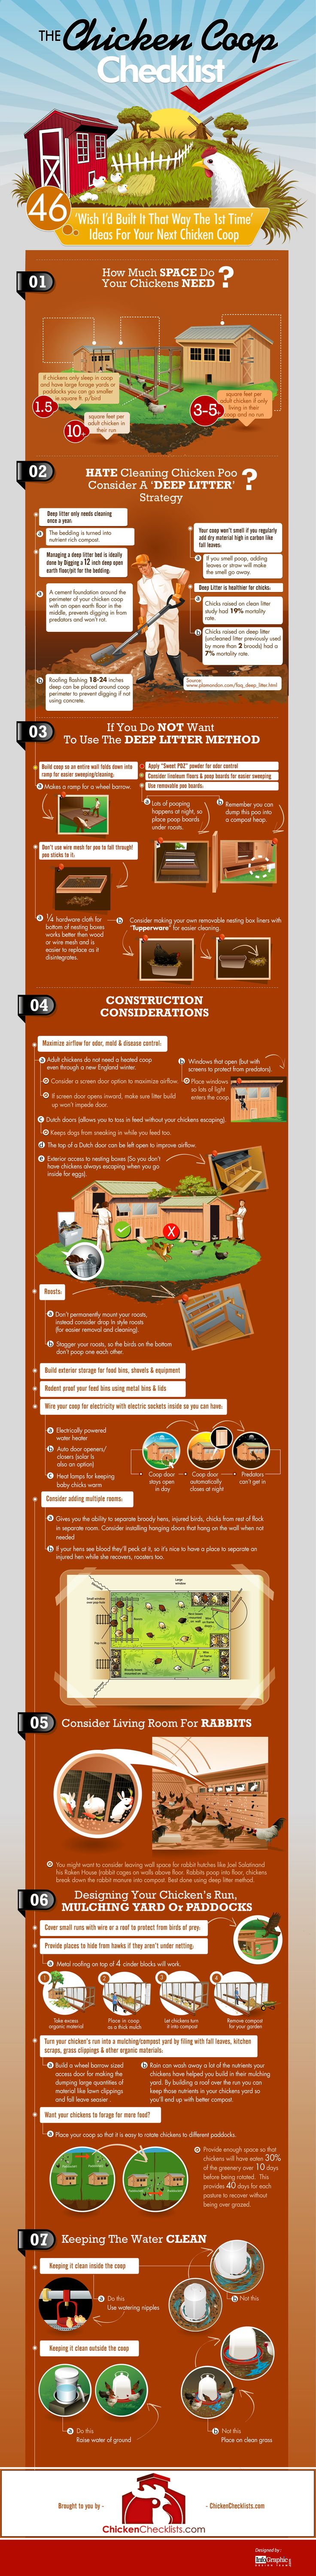 Chicken coop checklist infographic